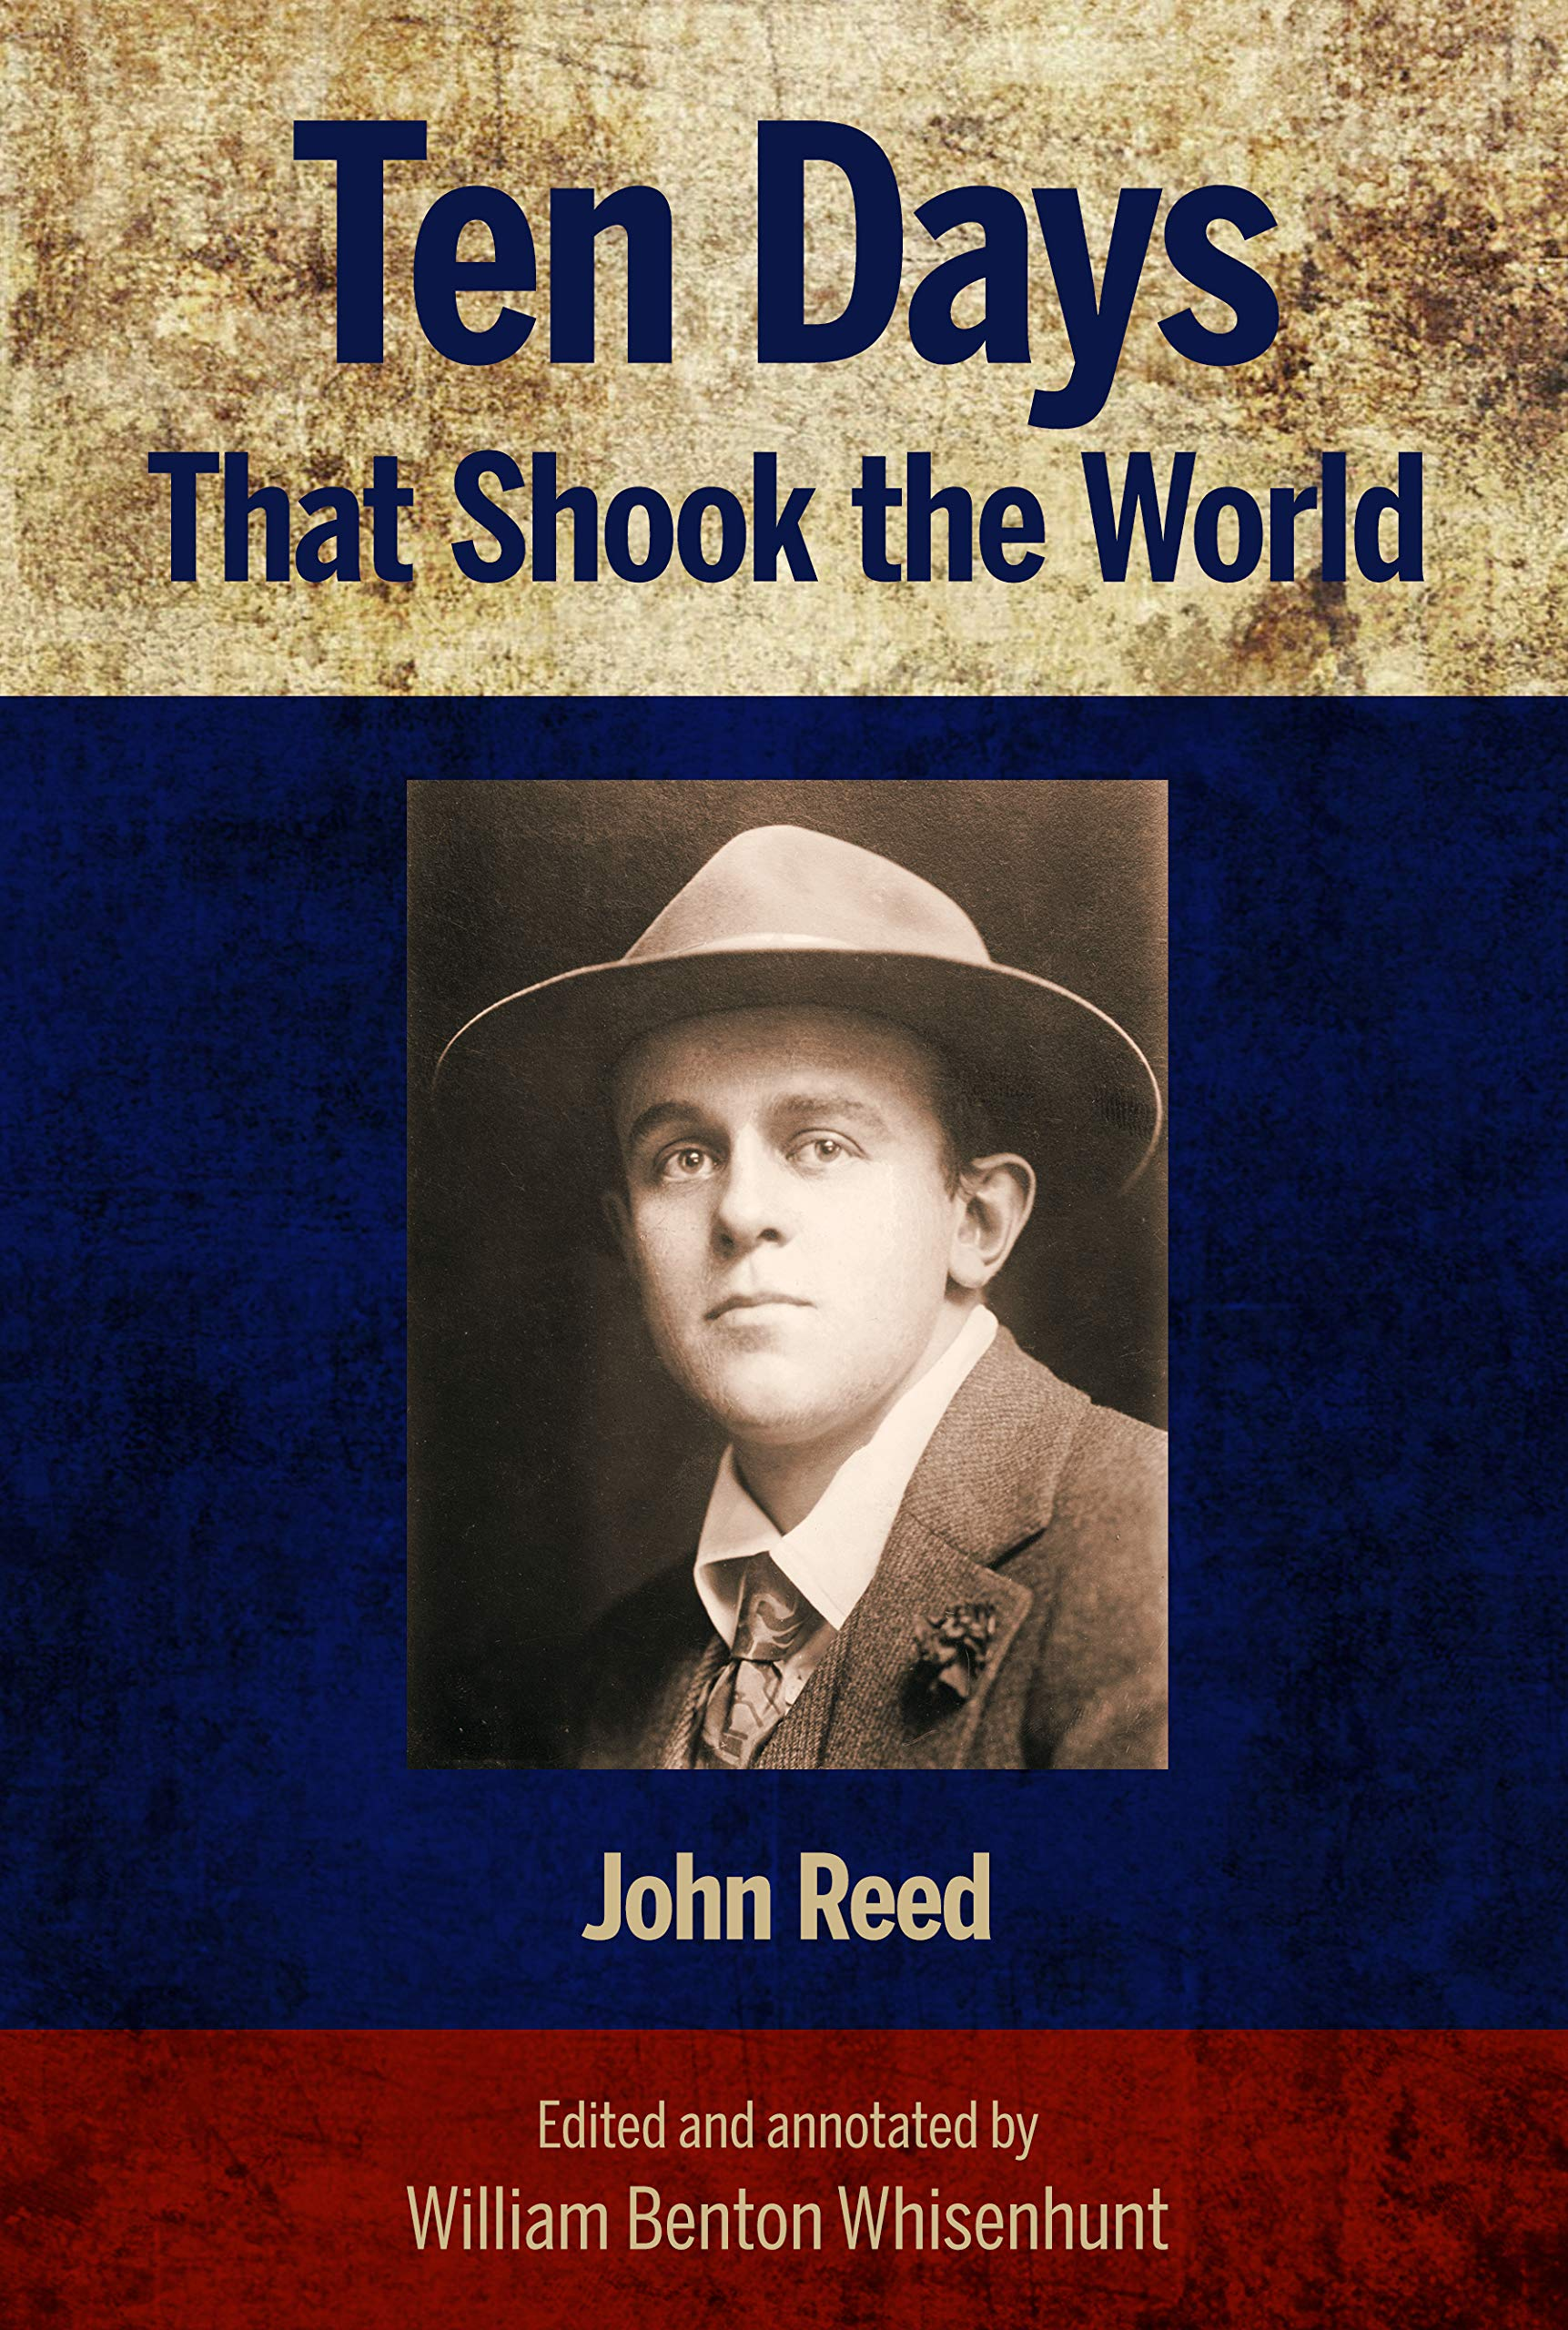 World that download free days shook the ten ebook